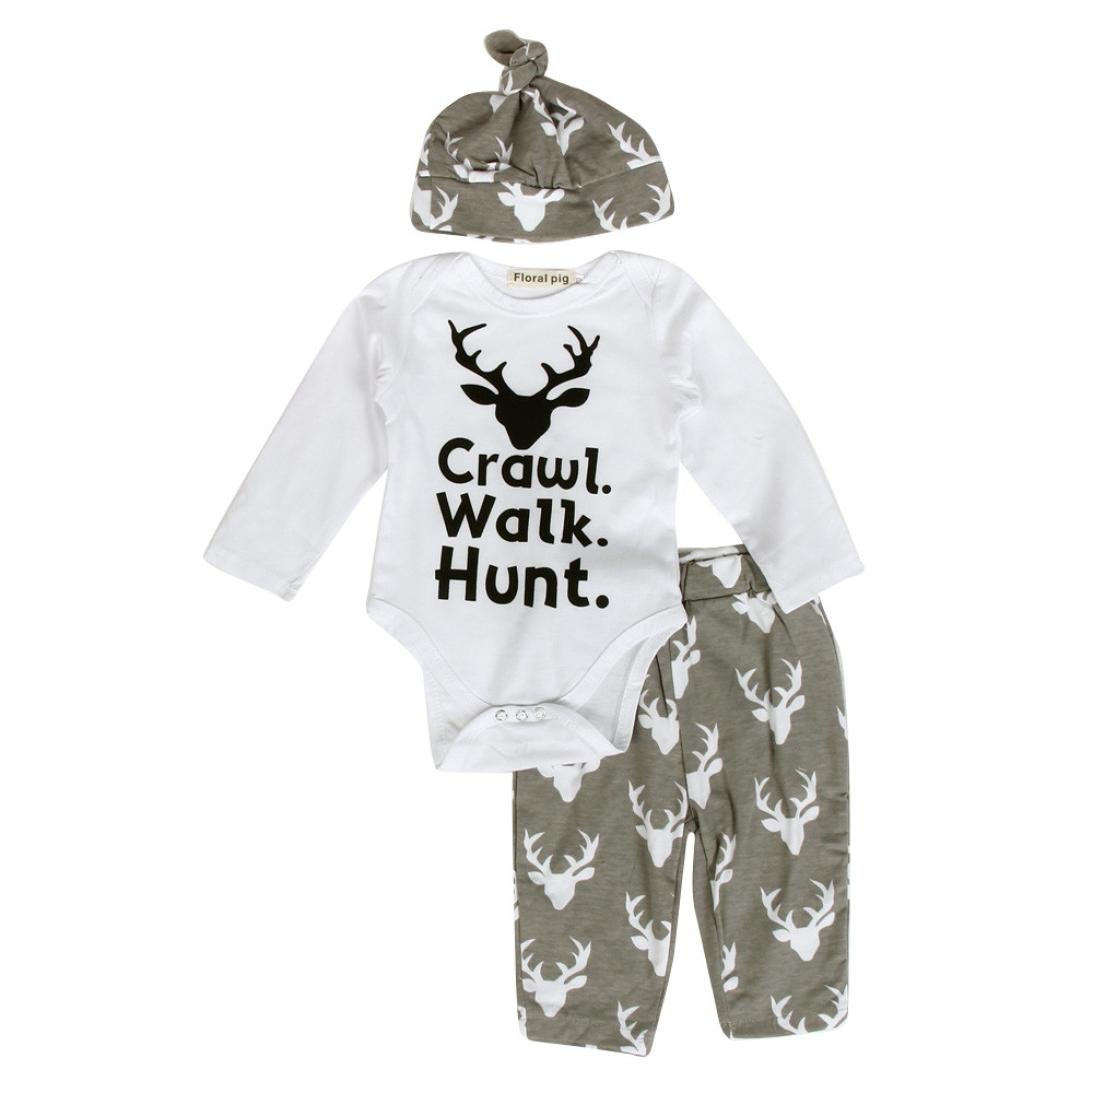 FEITONG Newborn Infant Baby Boy's Print Romper Tops+Long Pants +Hat …